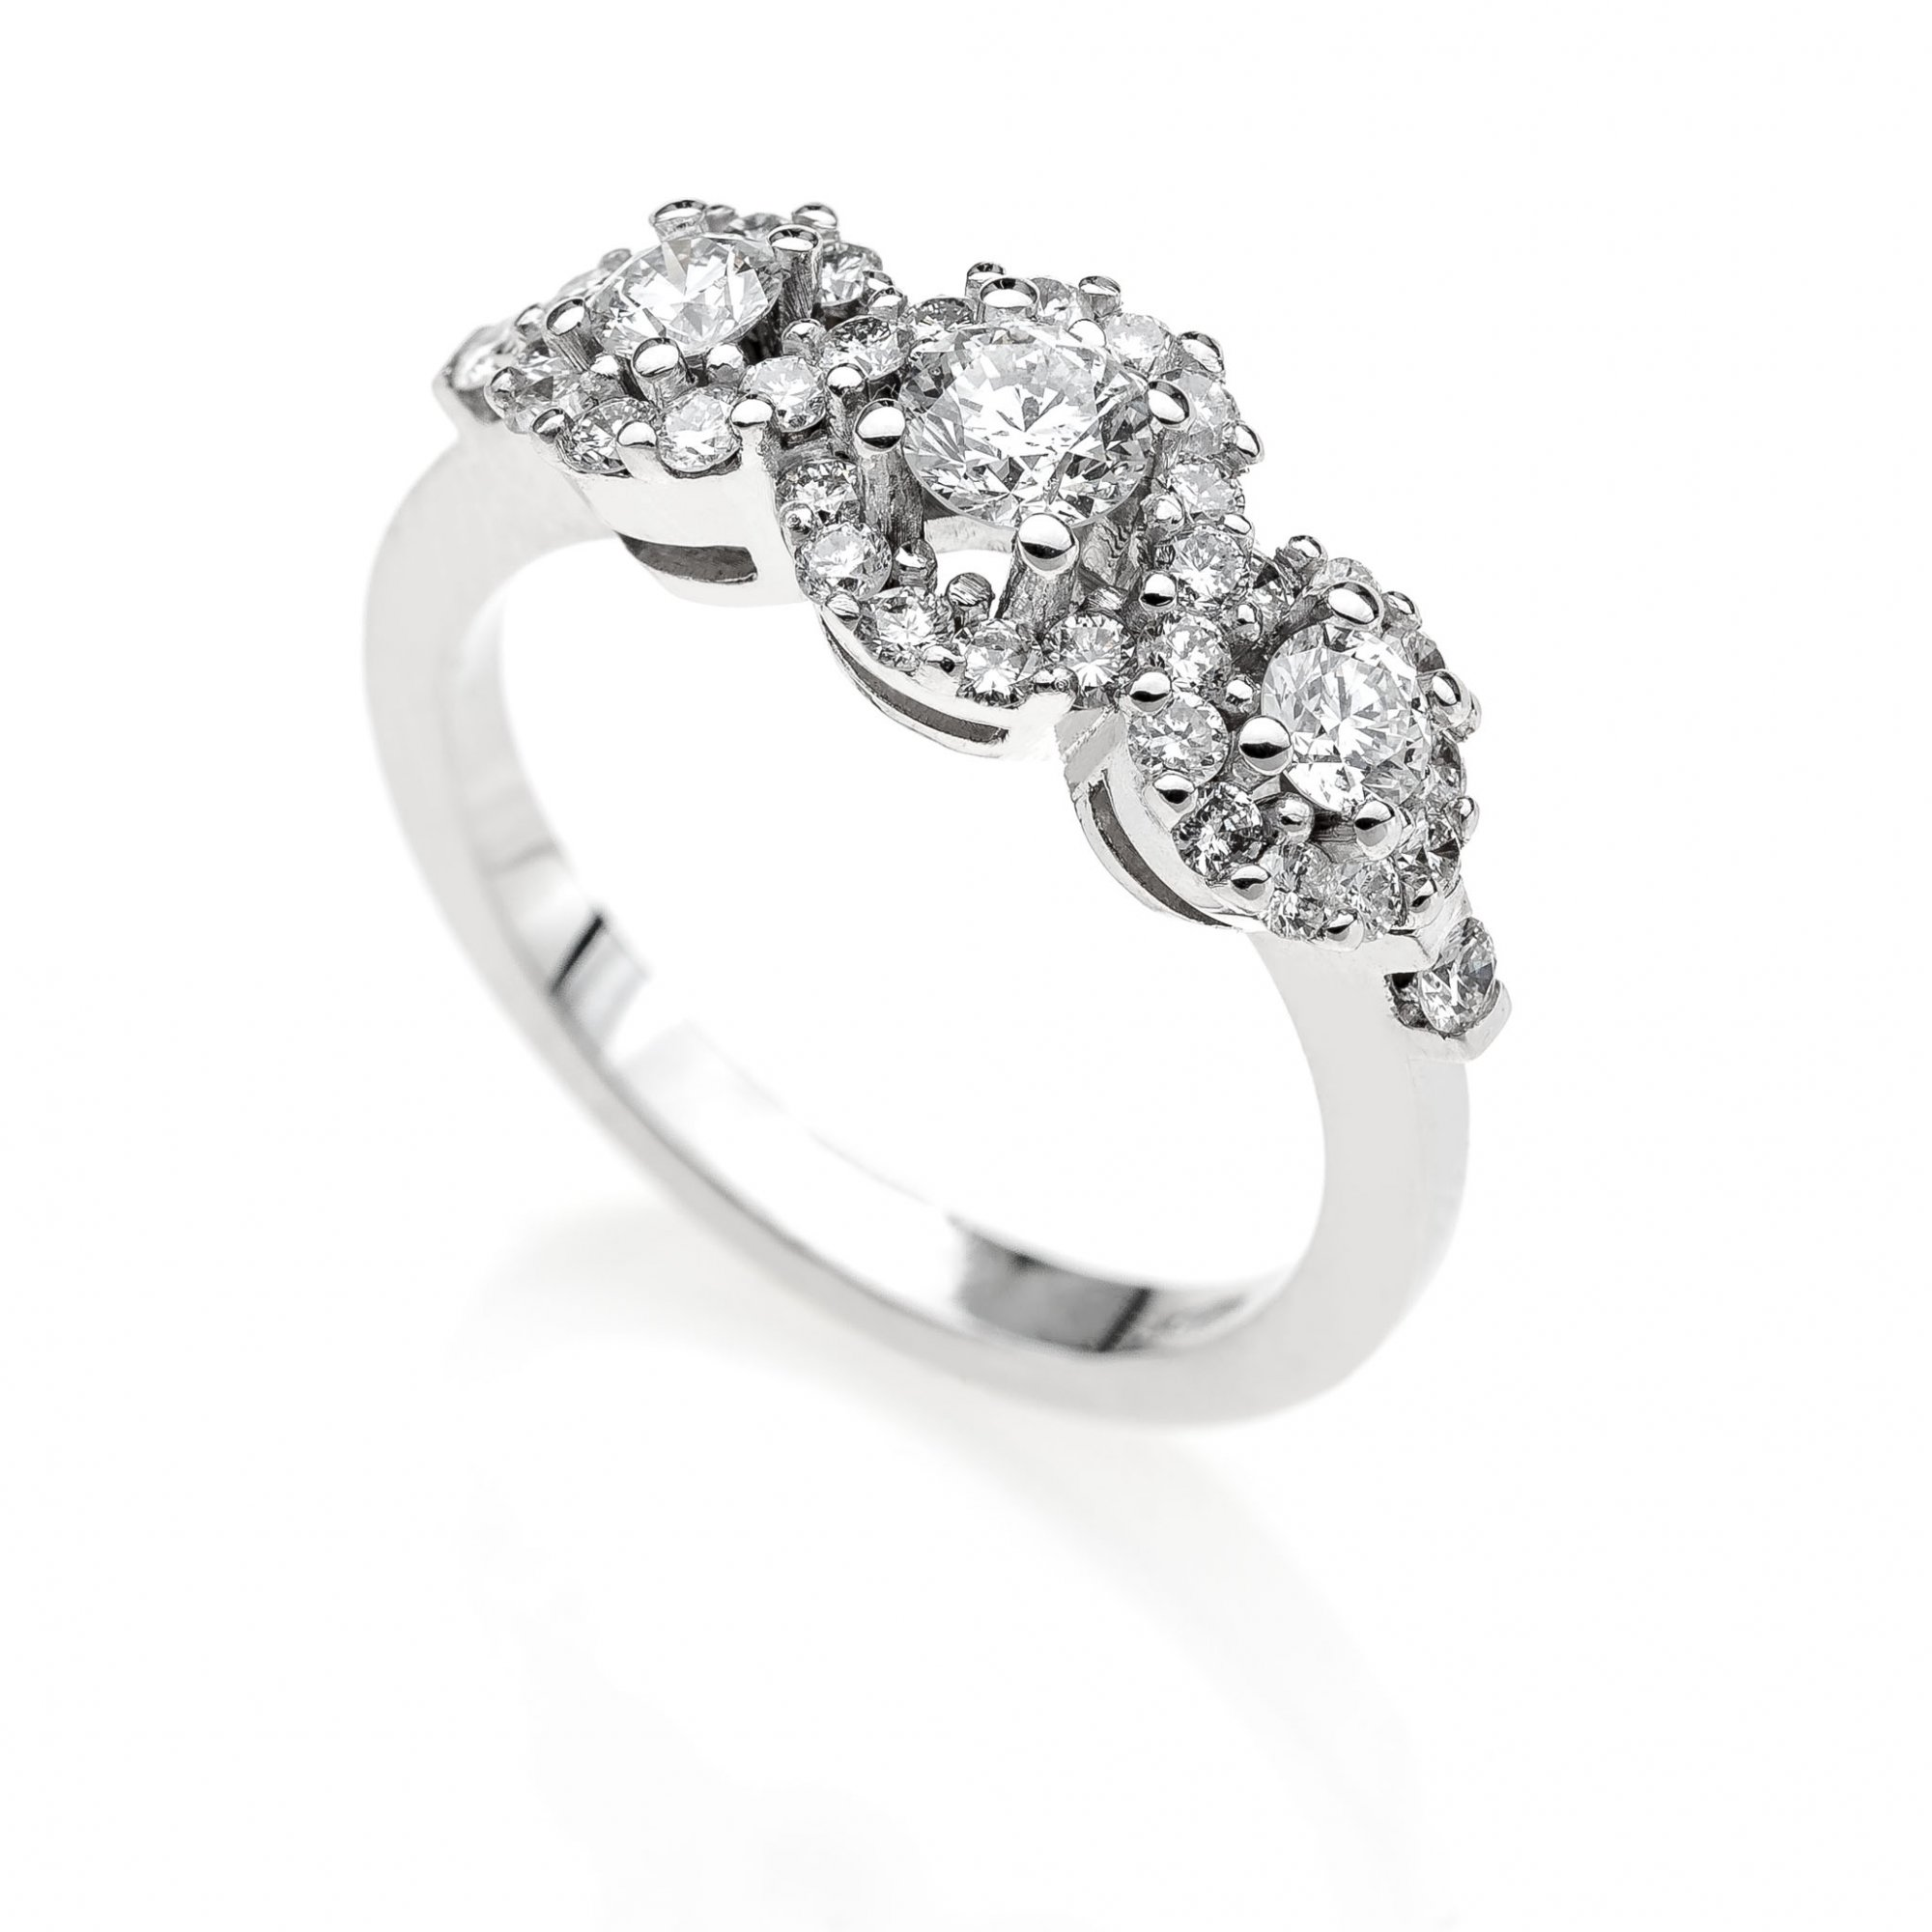 18 KT white gold trilogy ring with round brilliant cut diamonds ct.0.90 + ct.0.20 VVS F color